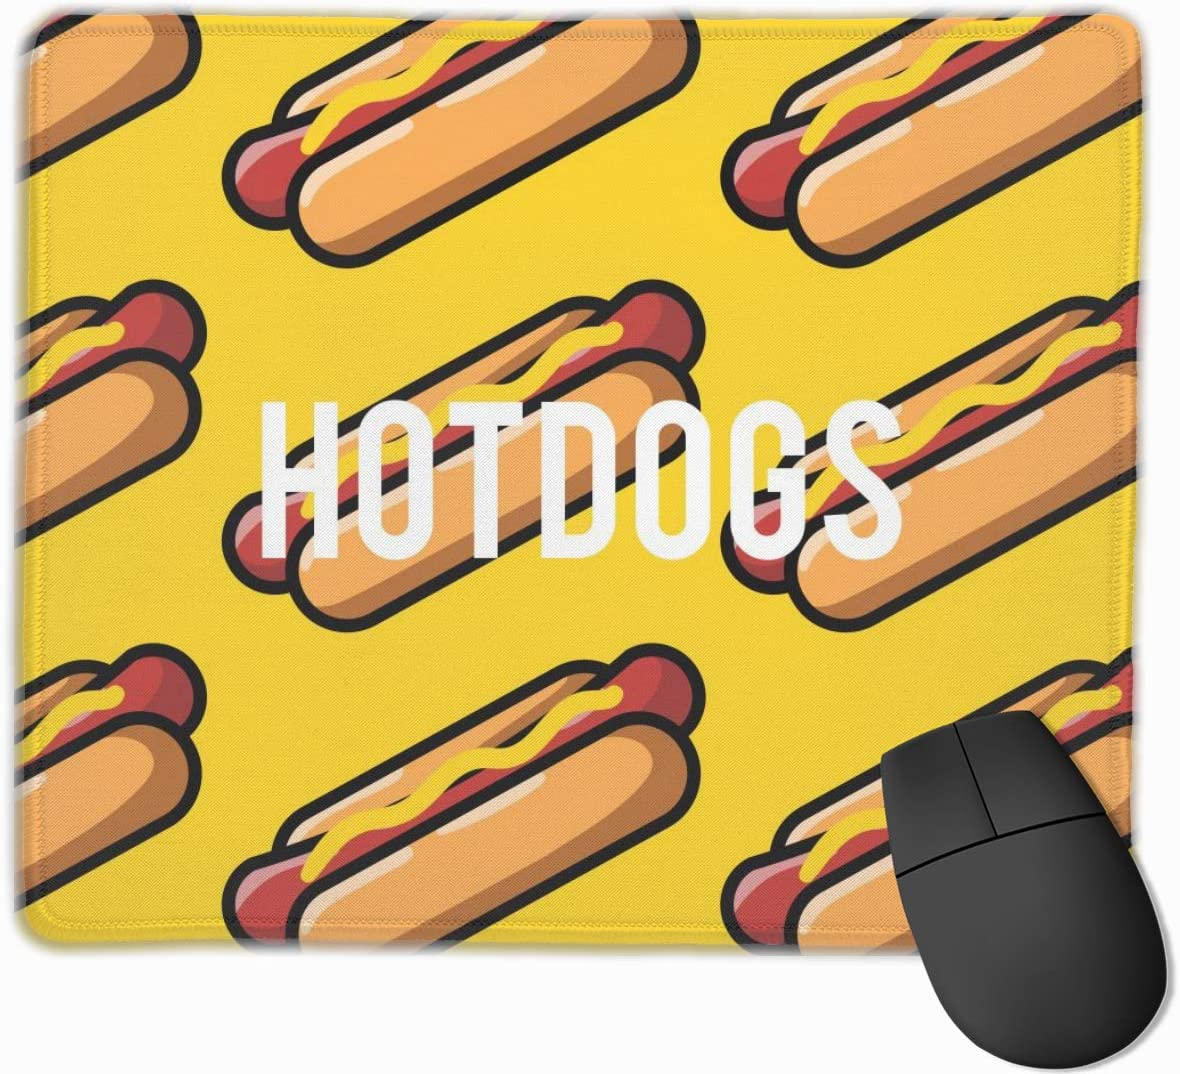 BINGZHAO Yellow Simple Hot Dogs Pattern Rectangular Non-Slip Gaming Mouse Pad Keyboard Rubber Mouse Pad for Home and Office Laptops